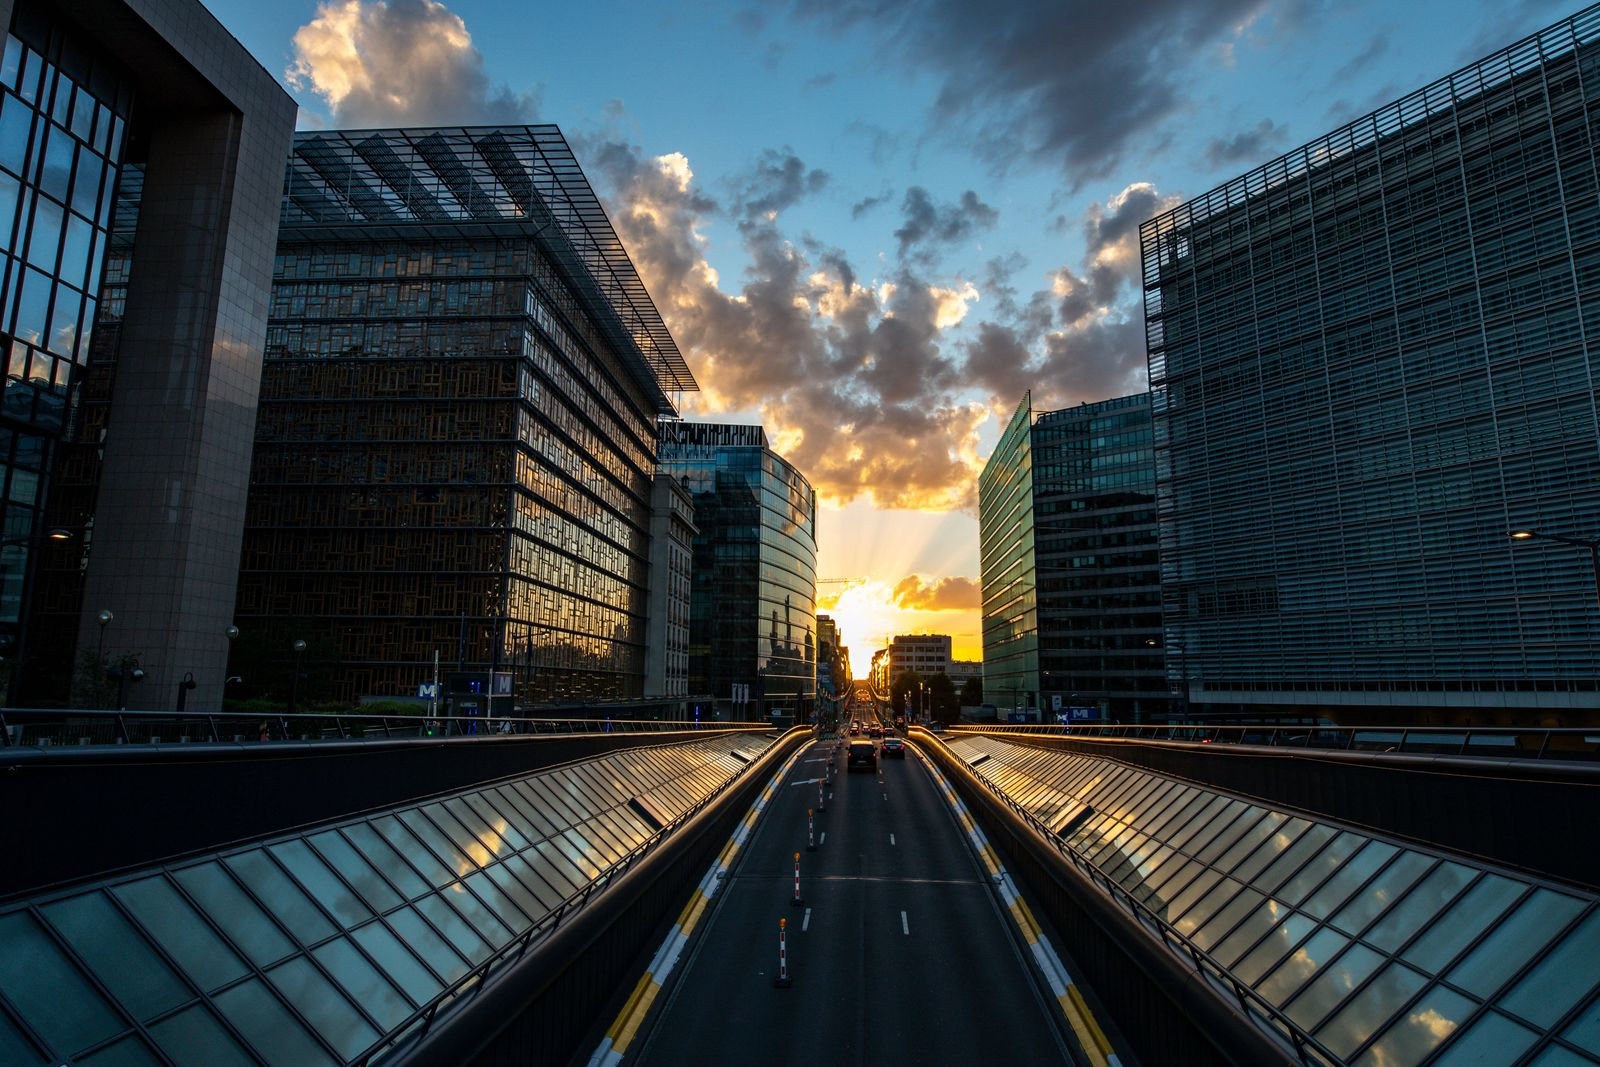 (200822) -- BRUSSELS, Aug. 22, 2020 -- The sunset is seen over Rue de la Loi in Brussels, Belgium, on Aug. 21, 2020. )